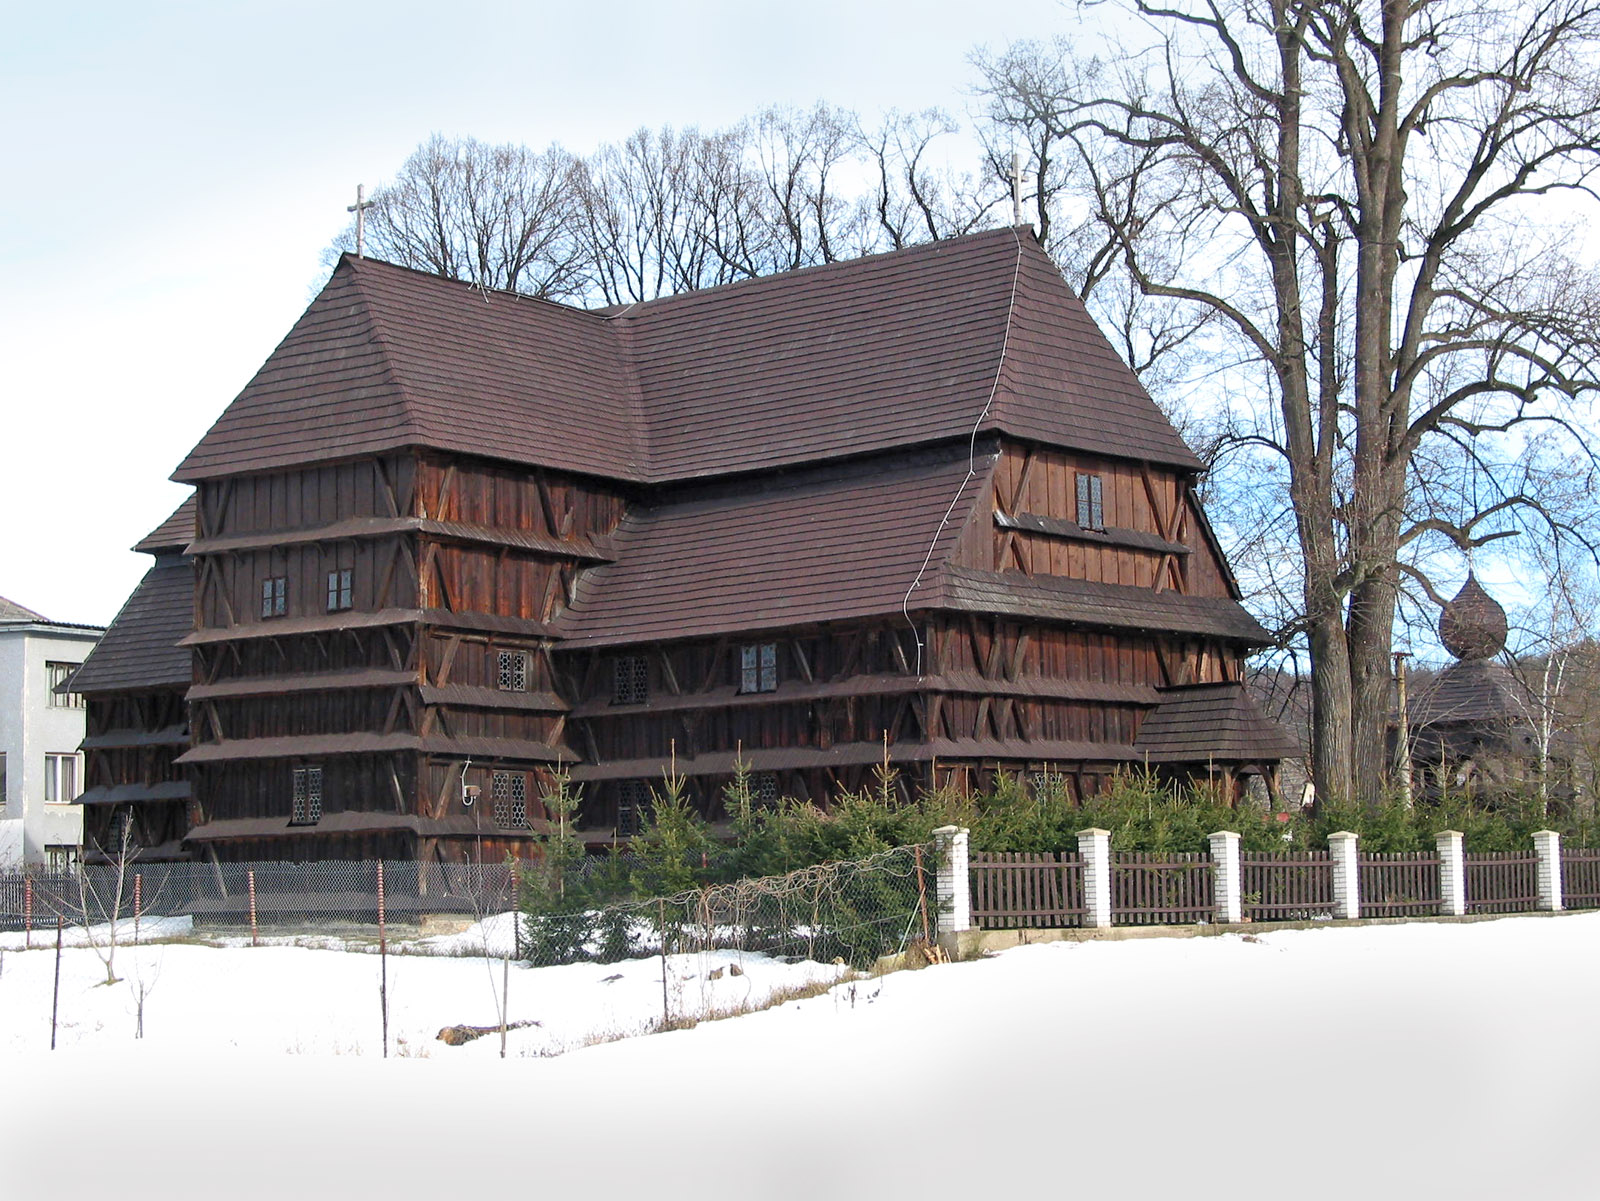 Evangelical´Articled´Wooden Church at Hronsek (Monuments Board of the SR Archives, photo by Peter Fratrič)